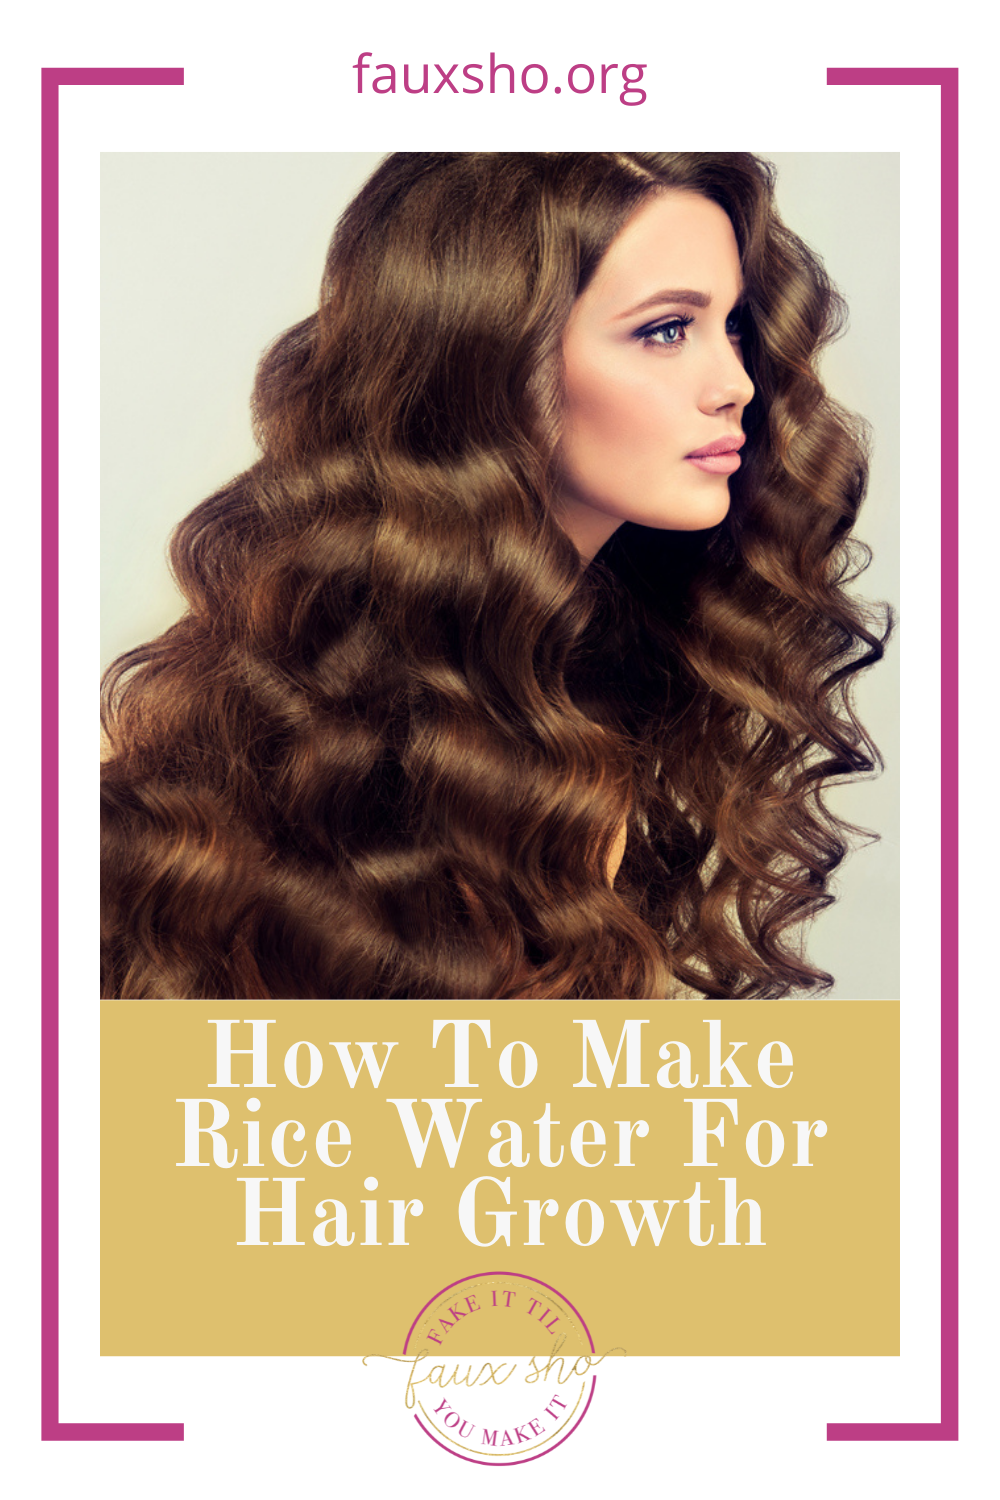 Fauxsho.org has the best ideas to help you fake it 'til you make it! Get long hair in no time. Try this method for making rice water to speed up results!